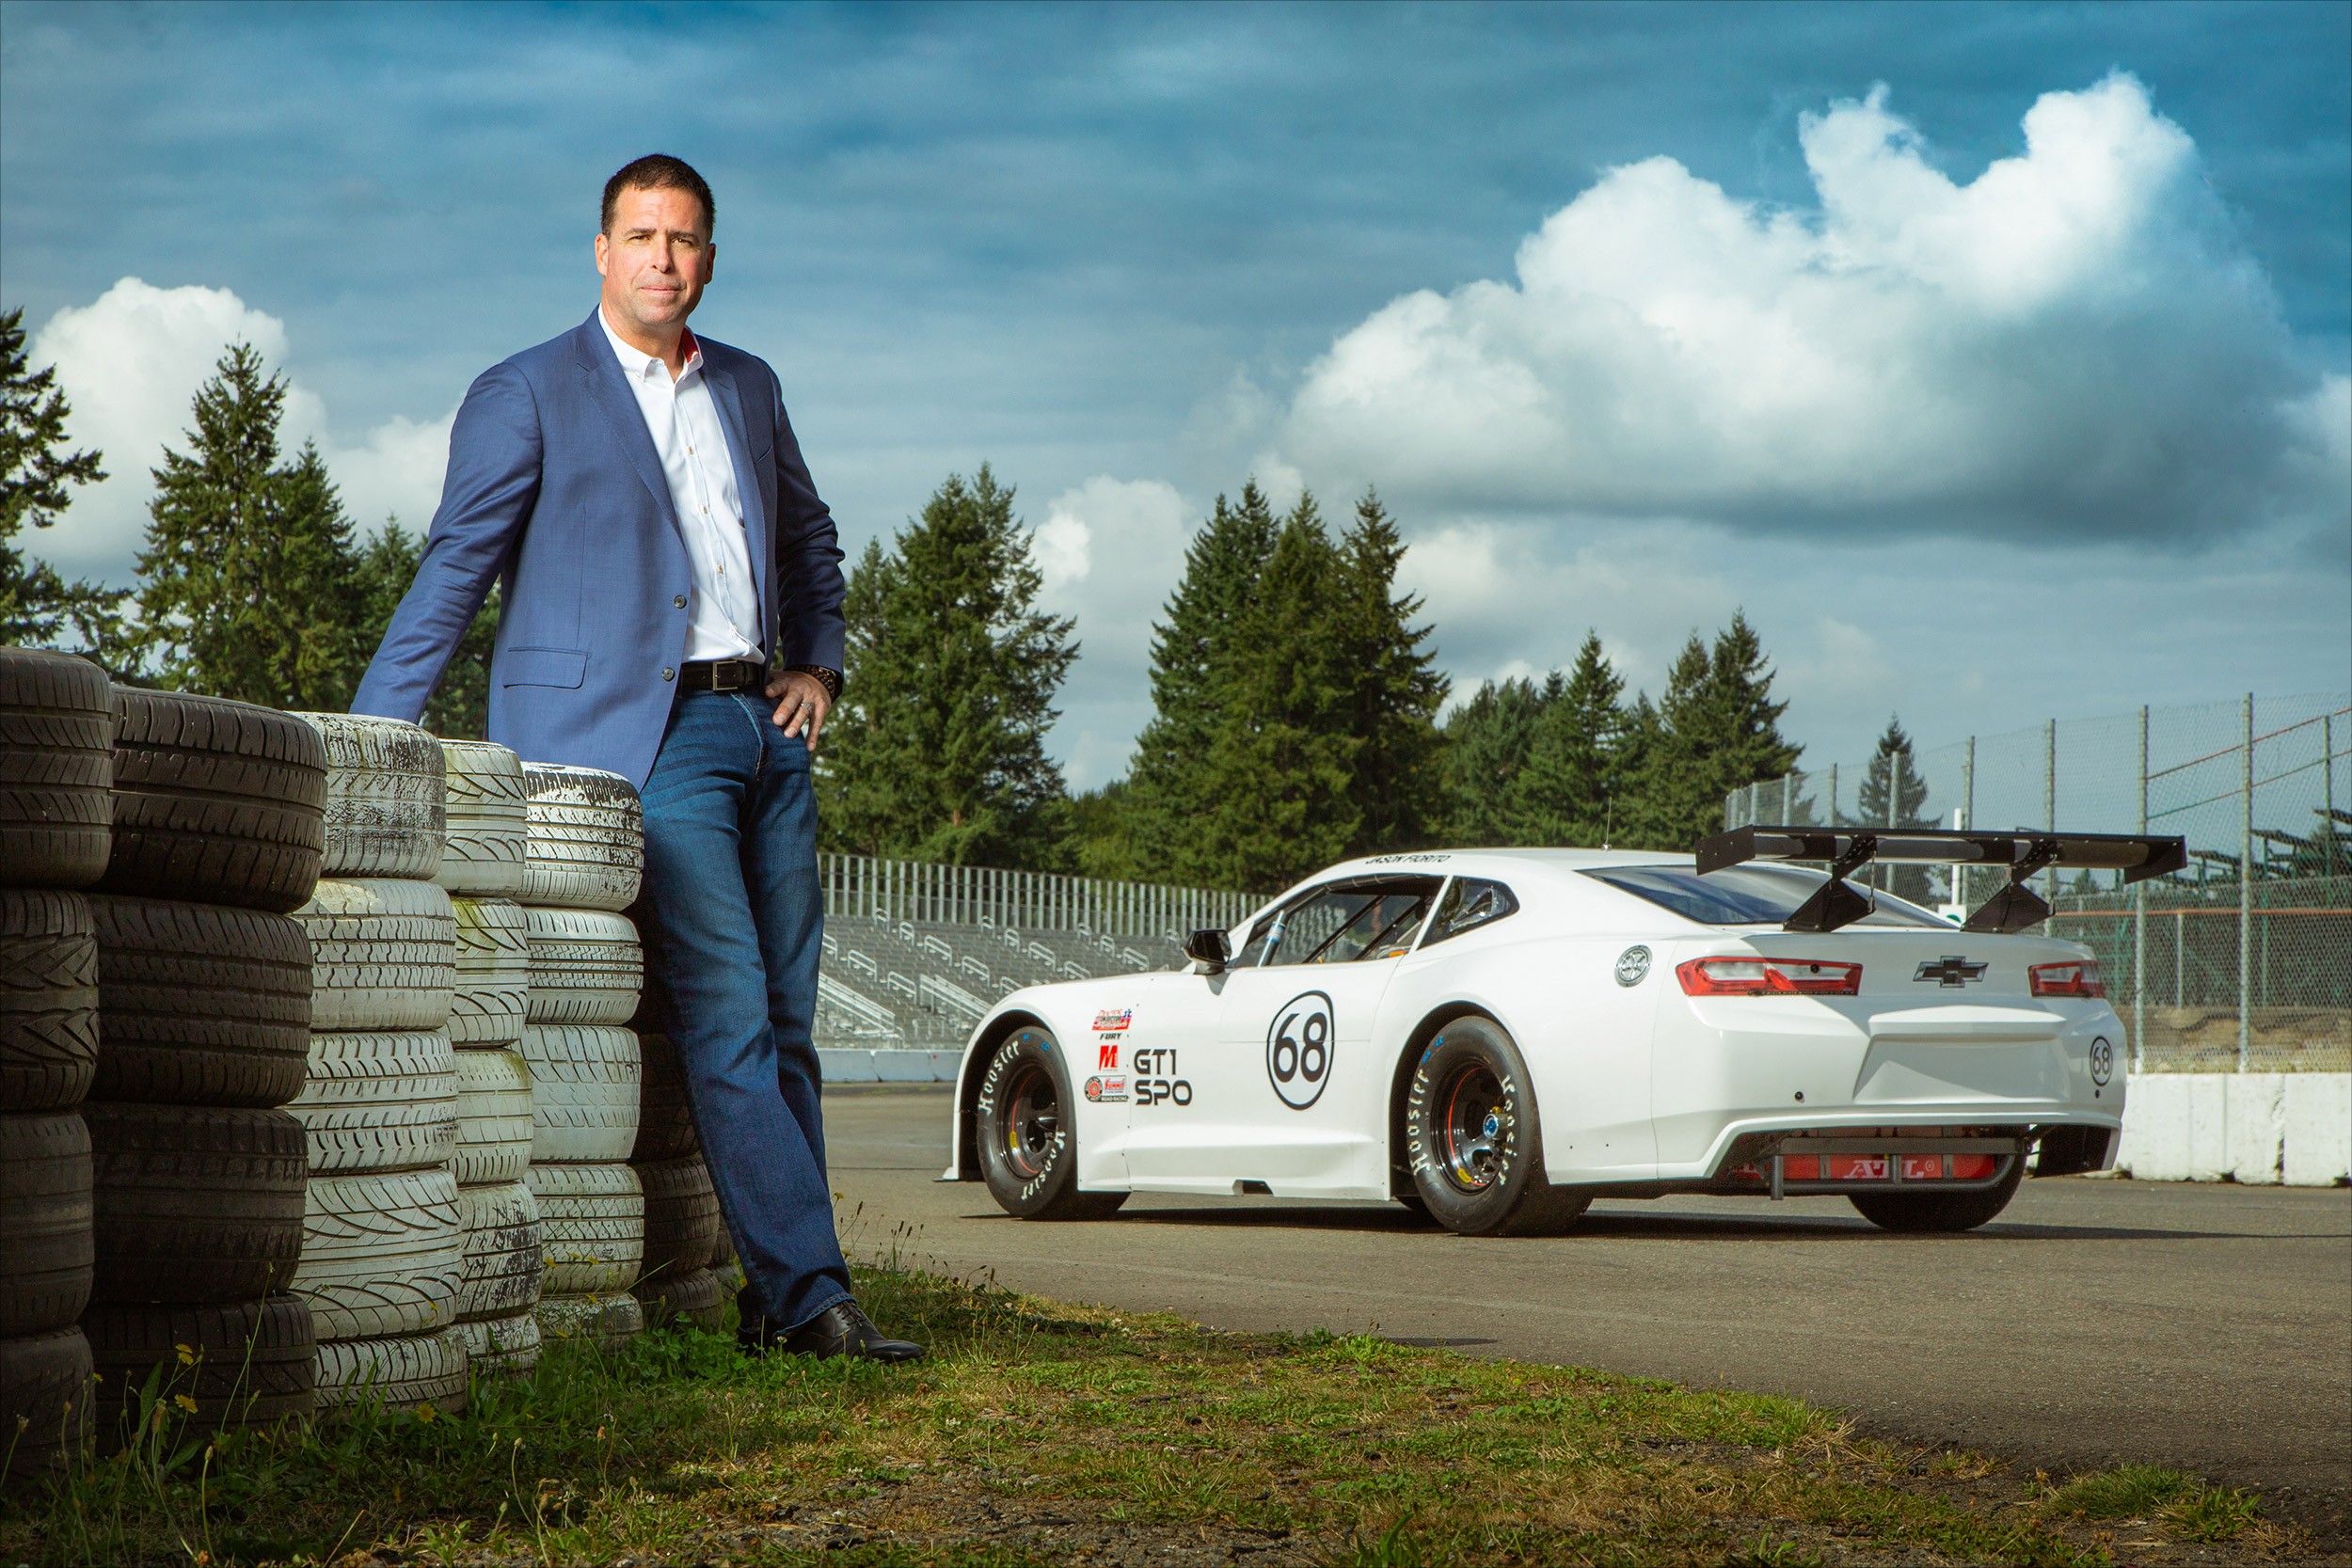 Jason Fiorito, owner of Pacific Raceways